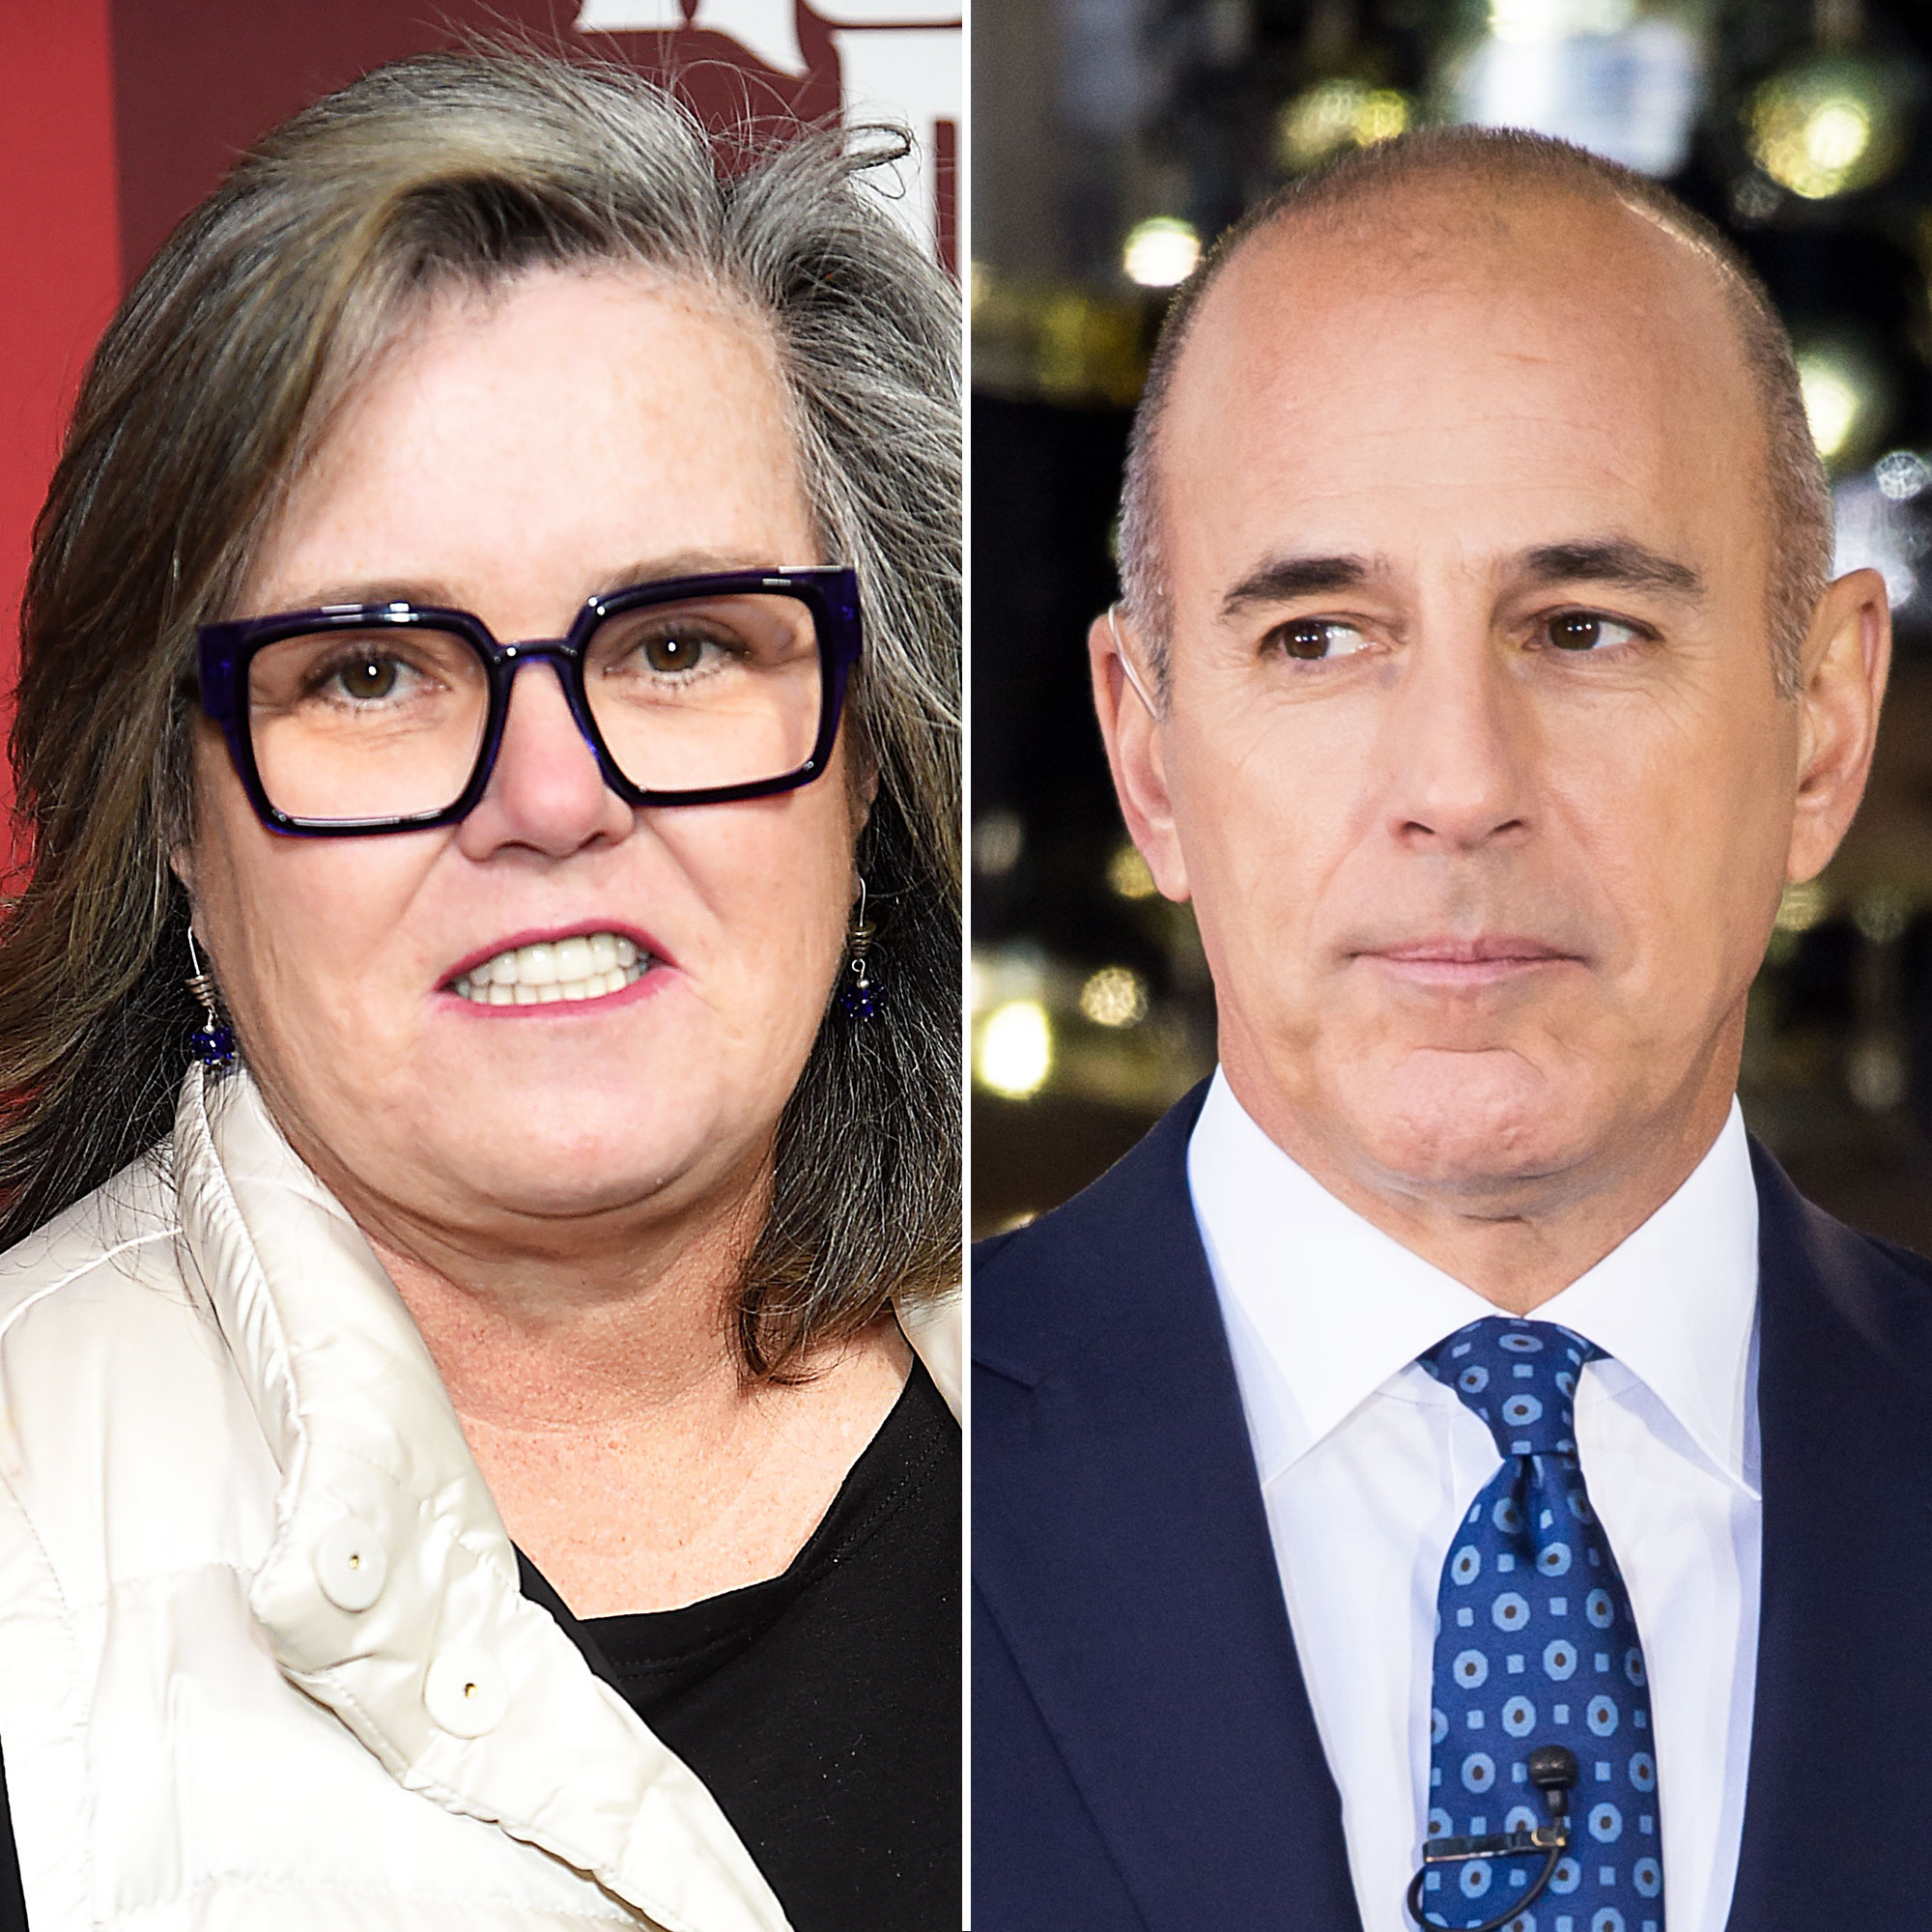 Rosie O'Donnell Matt Lauer She's 'Too Old'! Feuds, Friendships and More Shocking Revelations from 'The View' Tell-All - O'Donnell also commented on Matt Lauer in the book.